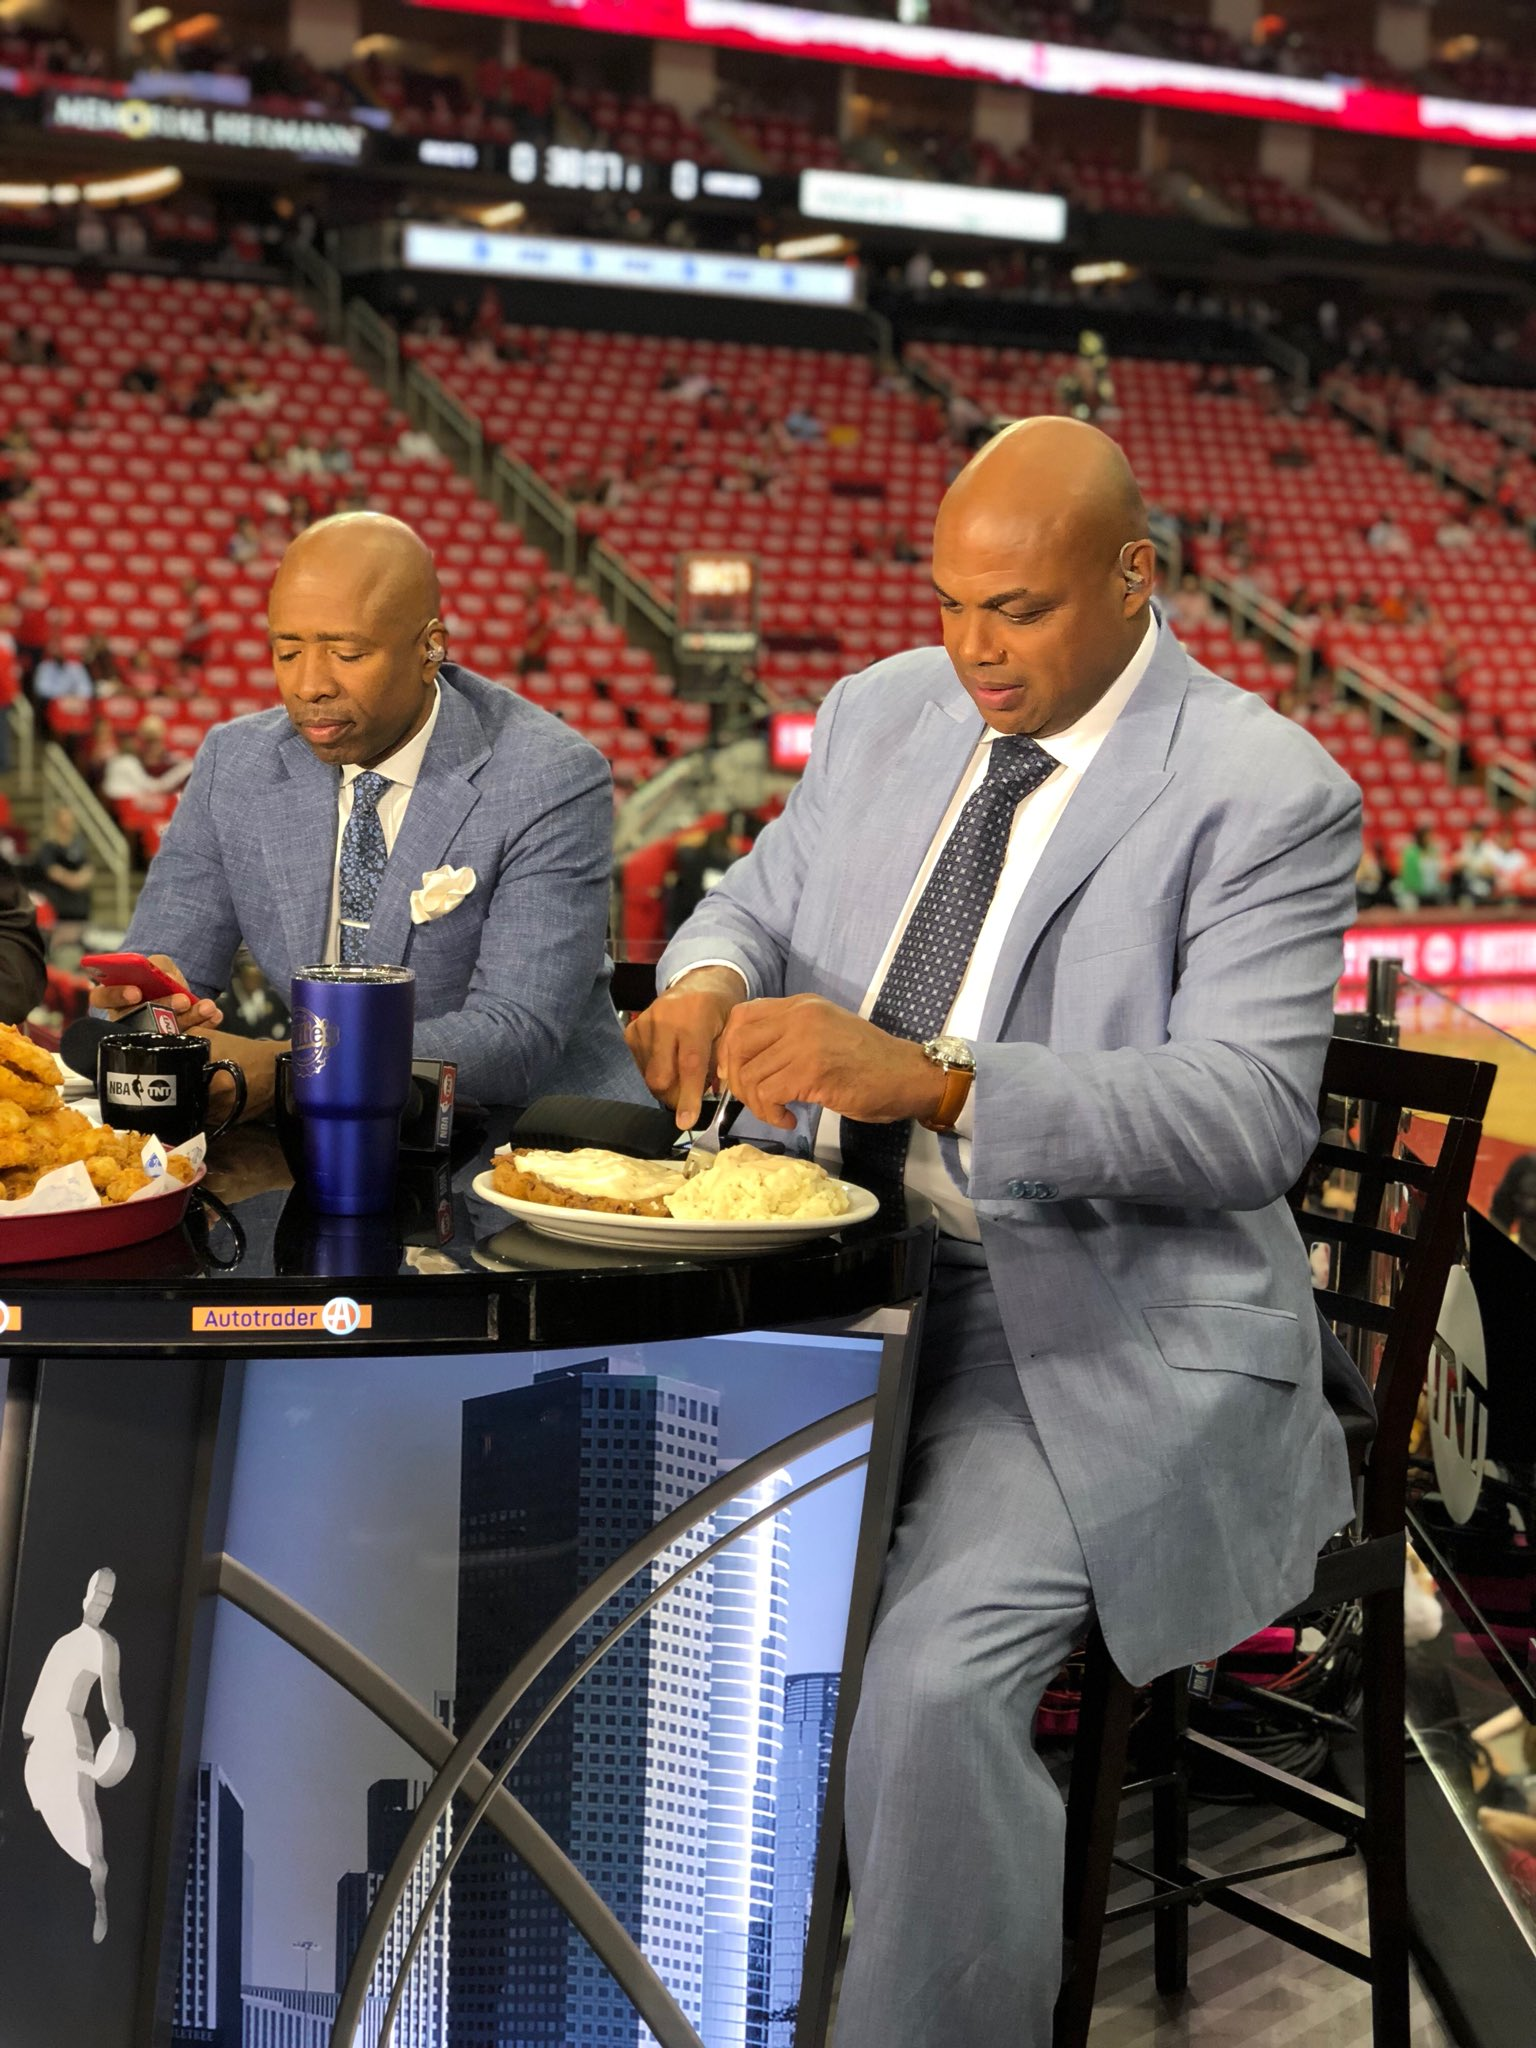 Find someone who looks at you the way Chuck looks at chicken fried steak. ��  #NBAPlayoffs https://t.co/mhVImw1Tsm